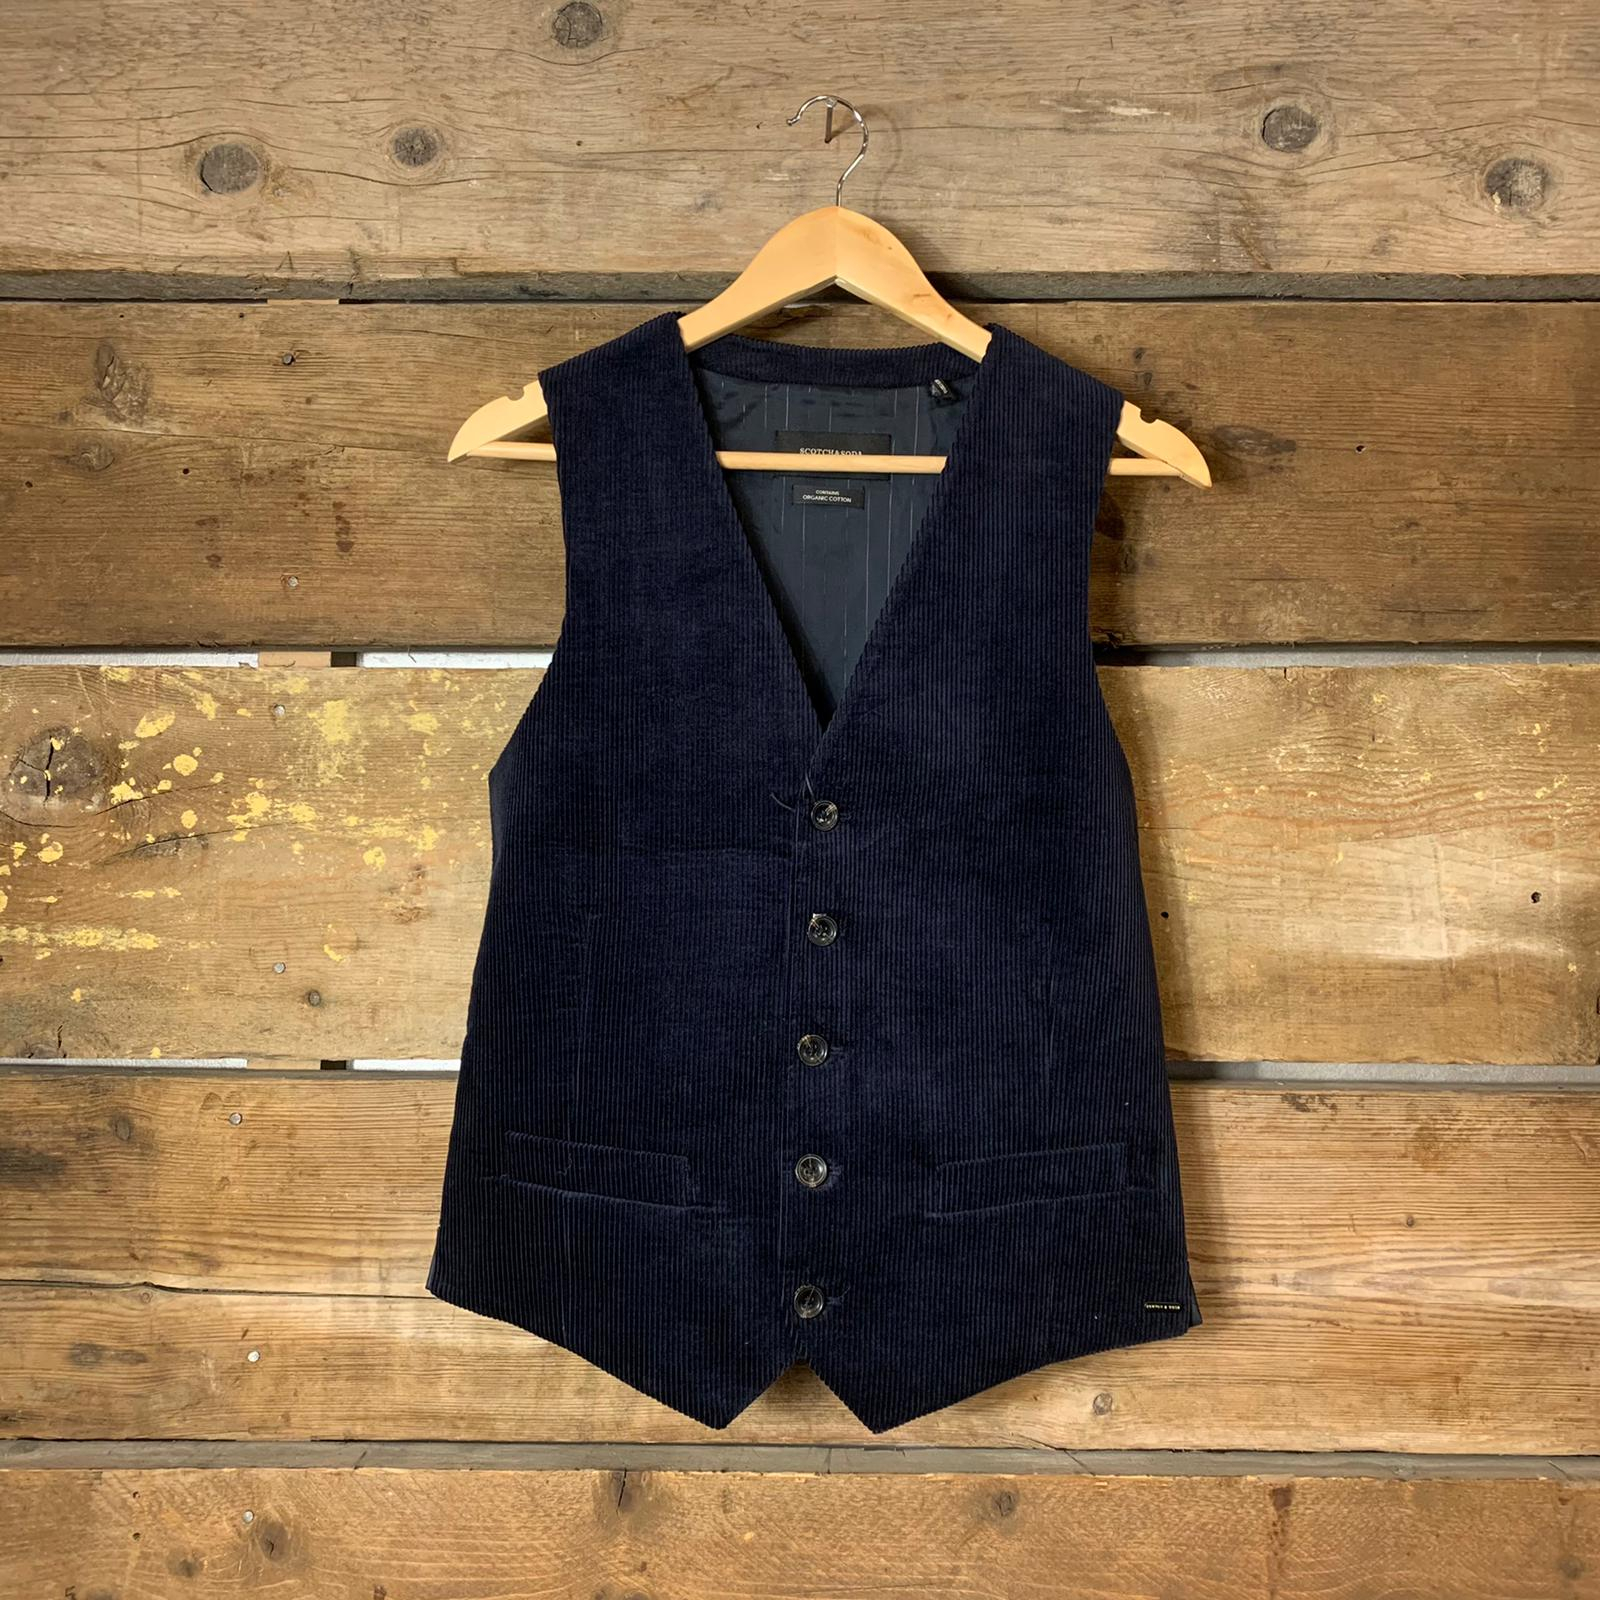 Gilet Scotch & Soda in Velluto a  Costine Blu Navy